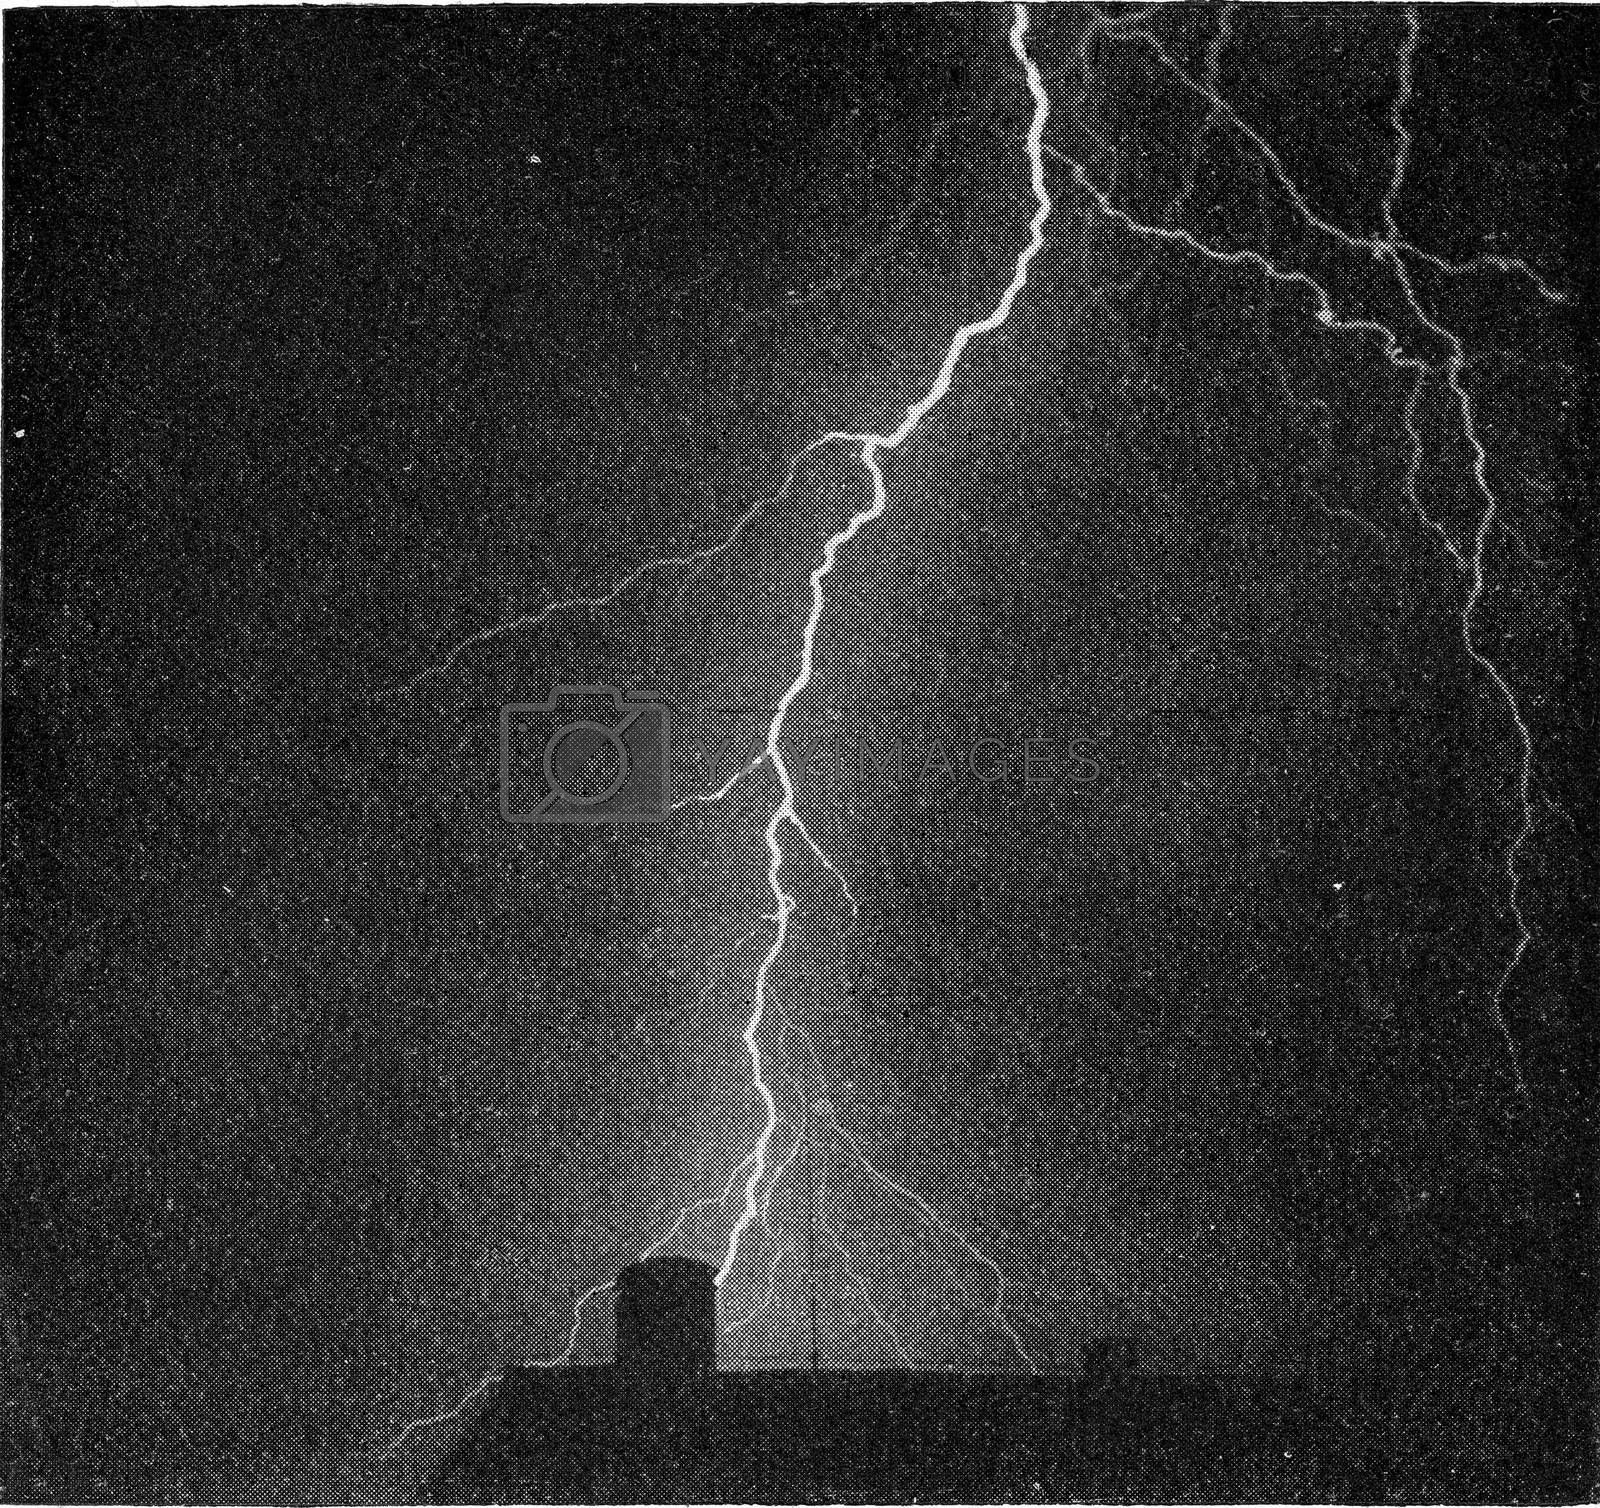 Royalty free image of Photograph of a violent thunderbolt, vintage engraving. by Morphart